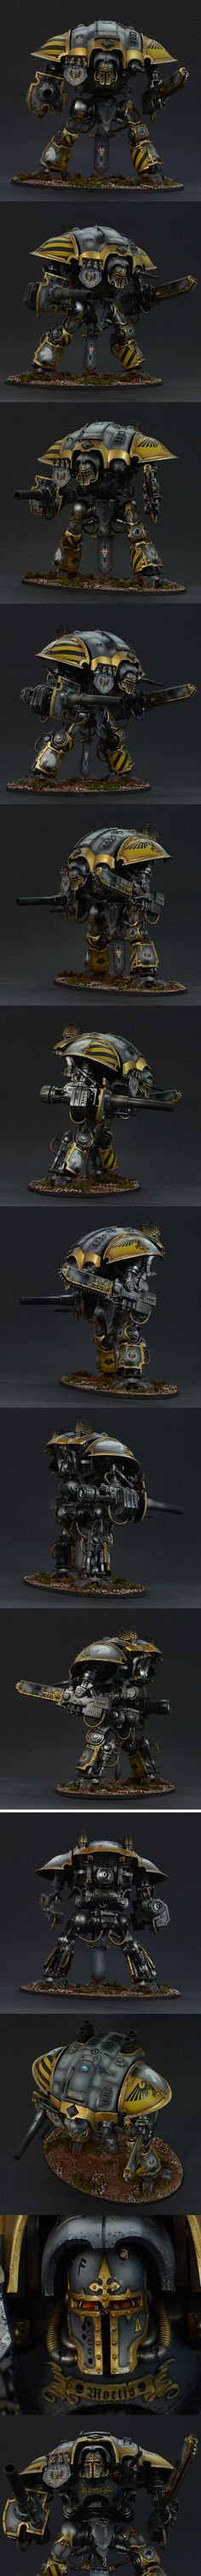 Space Wolves Imperial Knight, Questoris chassi, Paladin. House Cadmus.